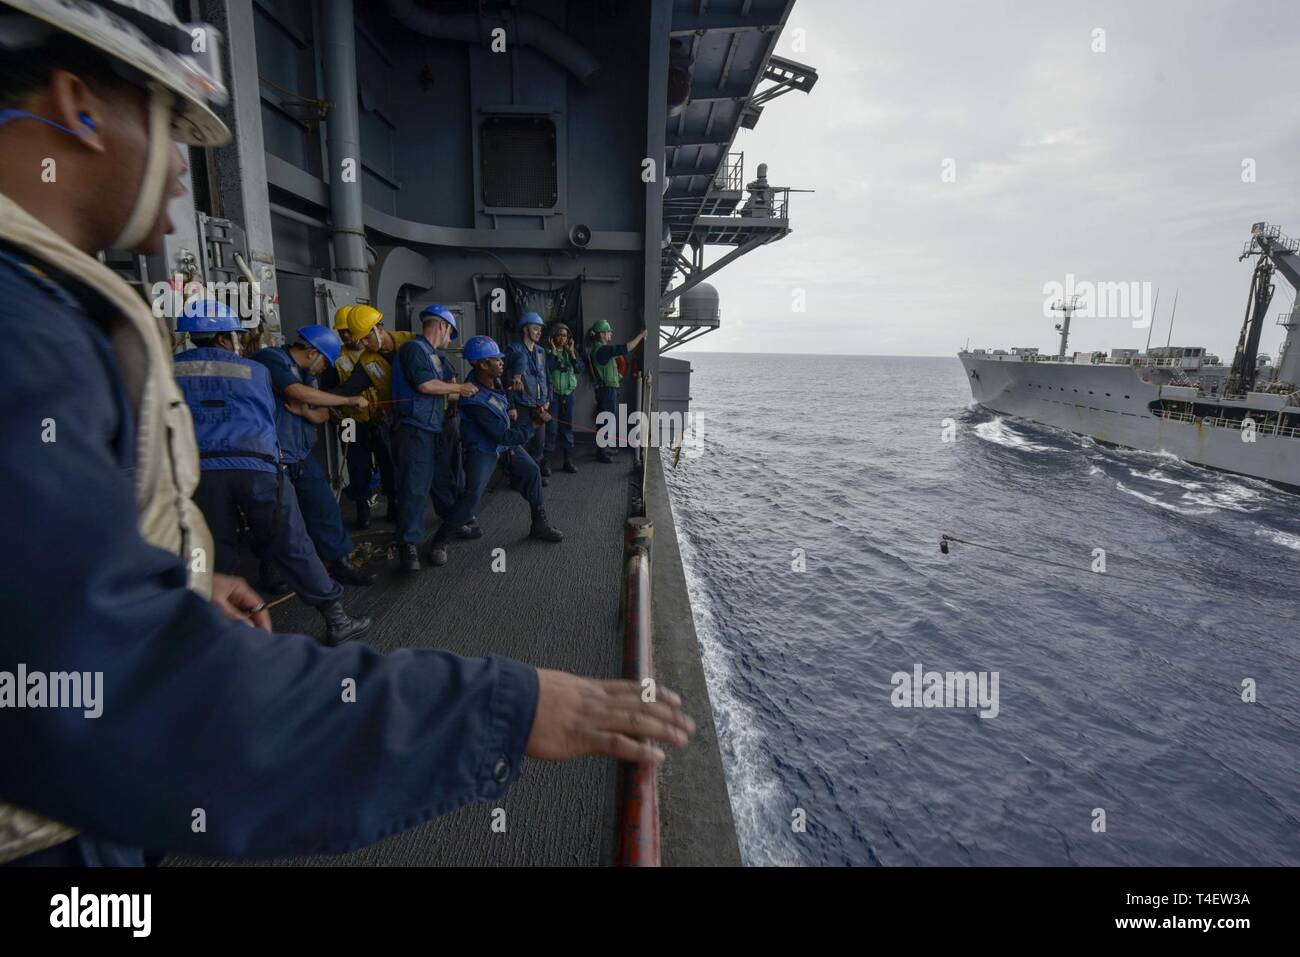 SOUTH CHINA SEA (April 4, 2019) - Sailors assigned to the amphibious assault ship USS Wasp (LHD 1) heave line during a replenishment-at-sea with the replenishment oiler USNS Pecos (T-AO 197) during Exercise Balikatan 2019. Exercise Balikatan, in its 35th iteration, is an annual U.S., Philippine military training exercise focused on a variety of missions, including humanitarian assistance and disaster relief, counter-terrorism, and other combined military operations. - Stock Image